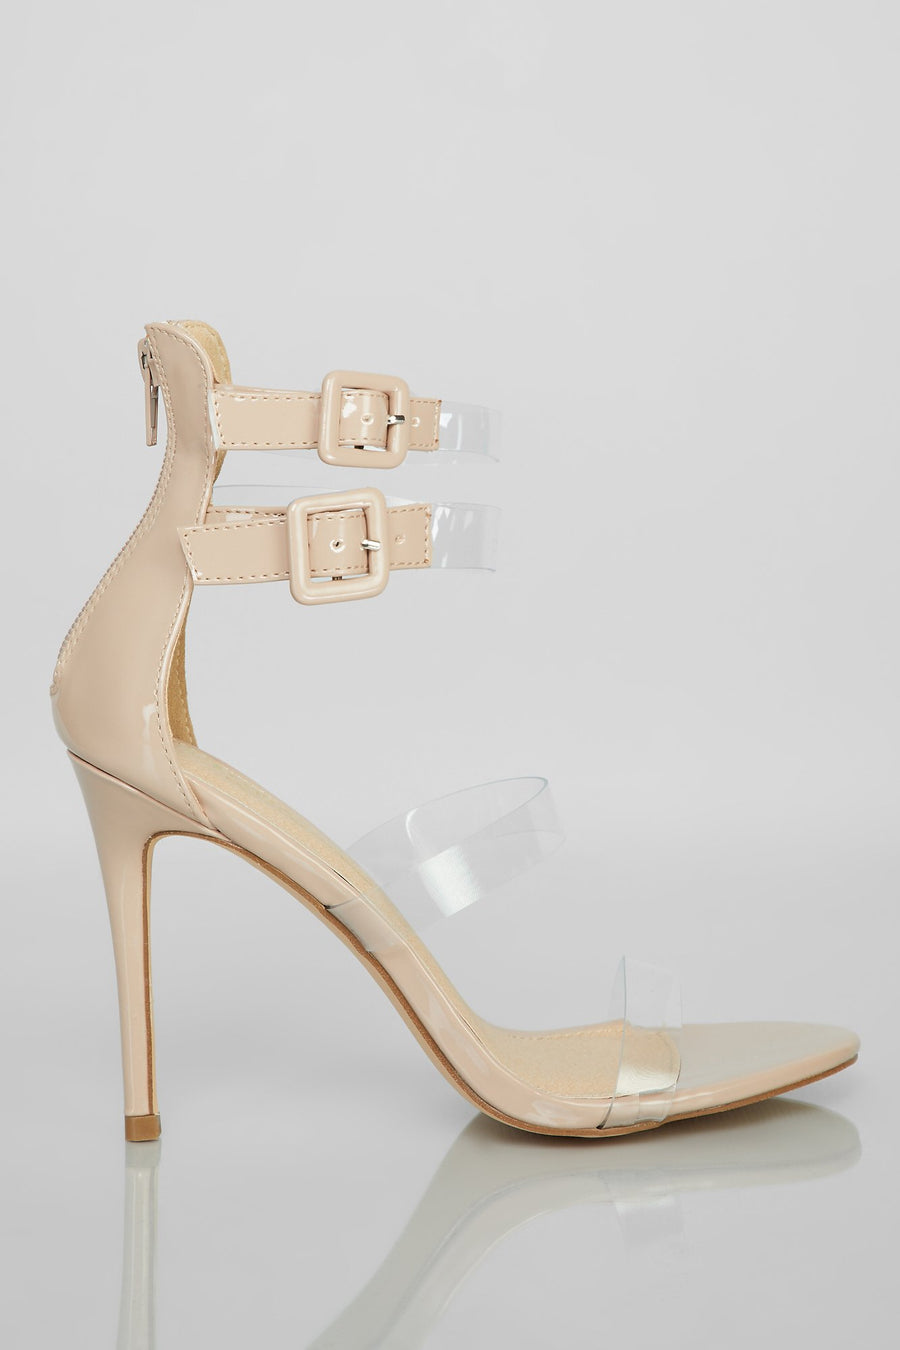 Make It Clear Heel - Nude